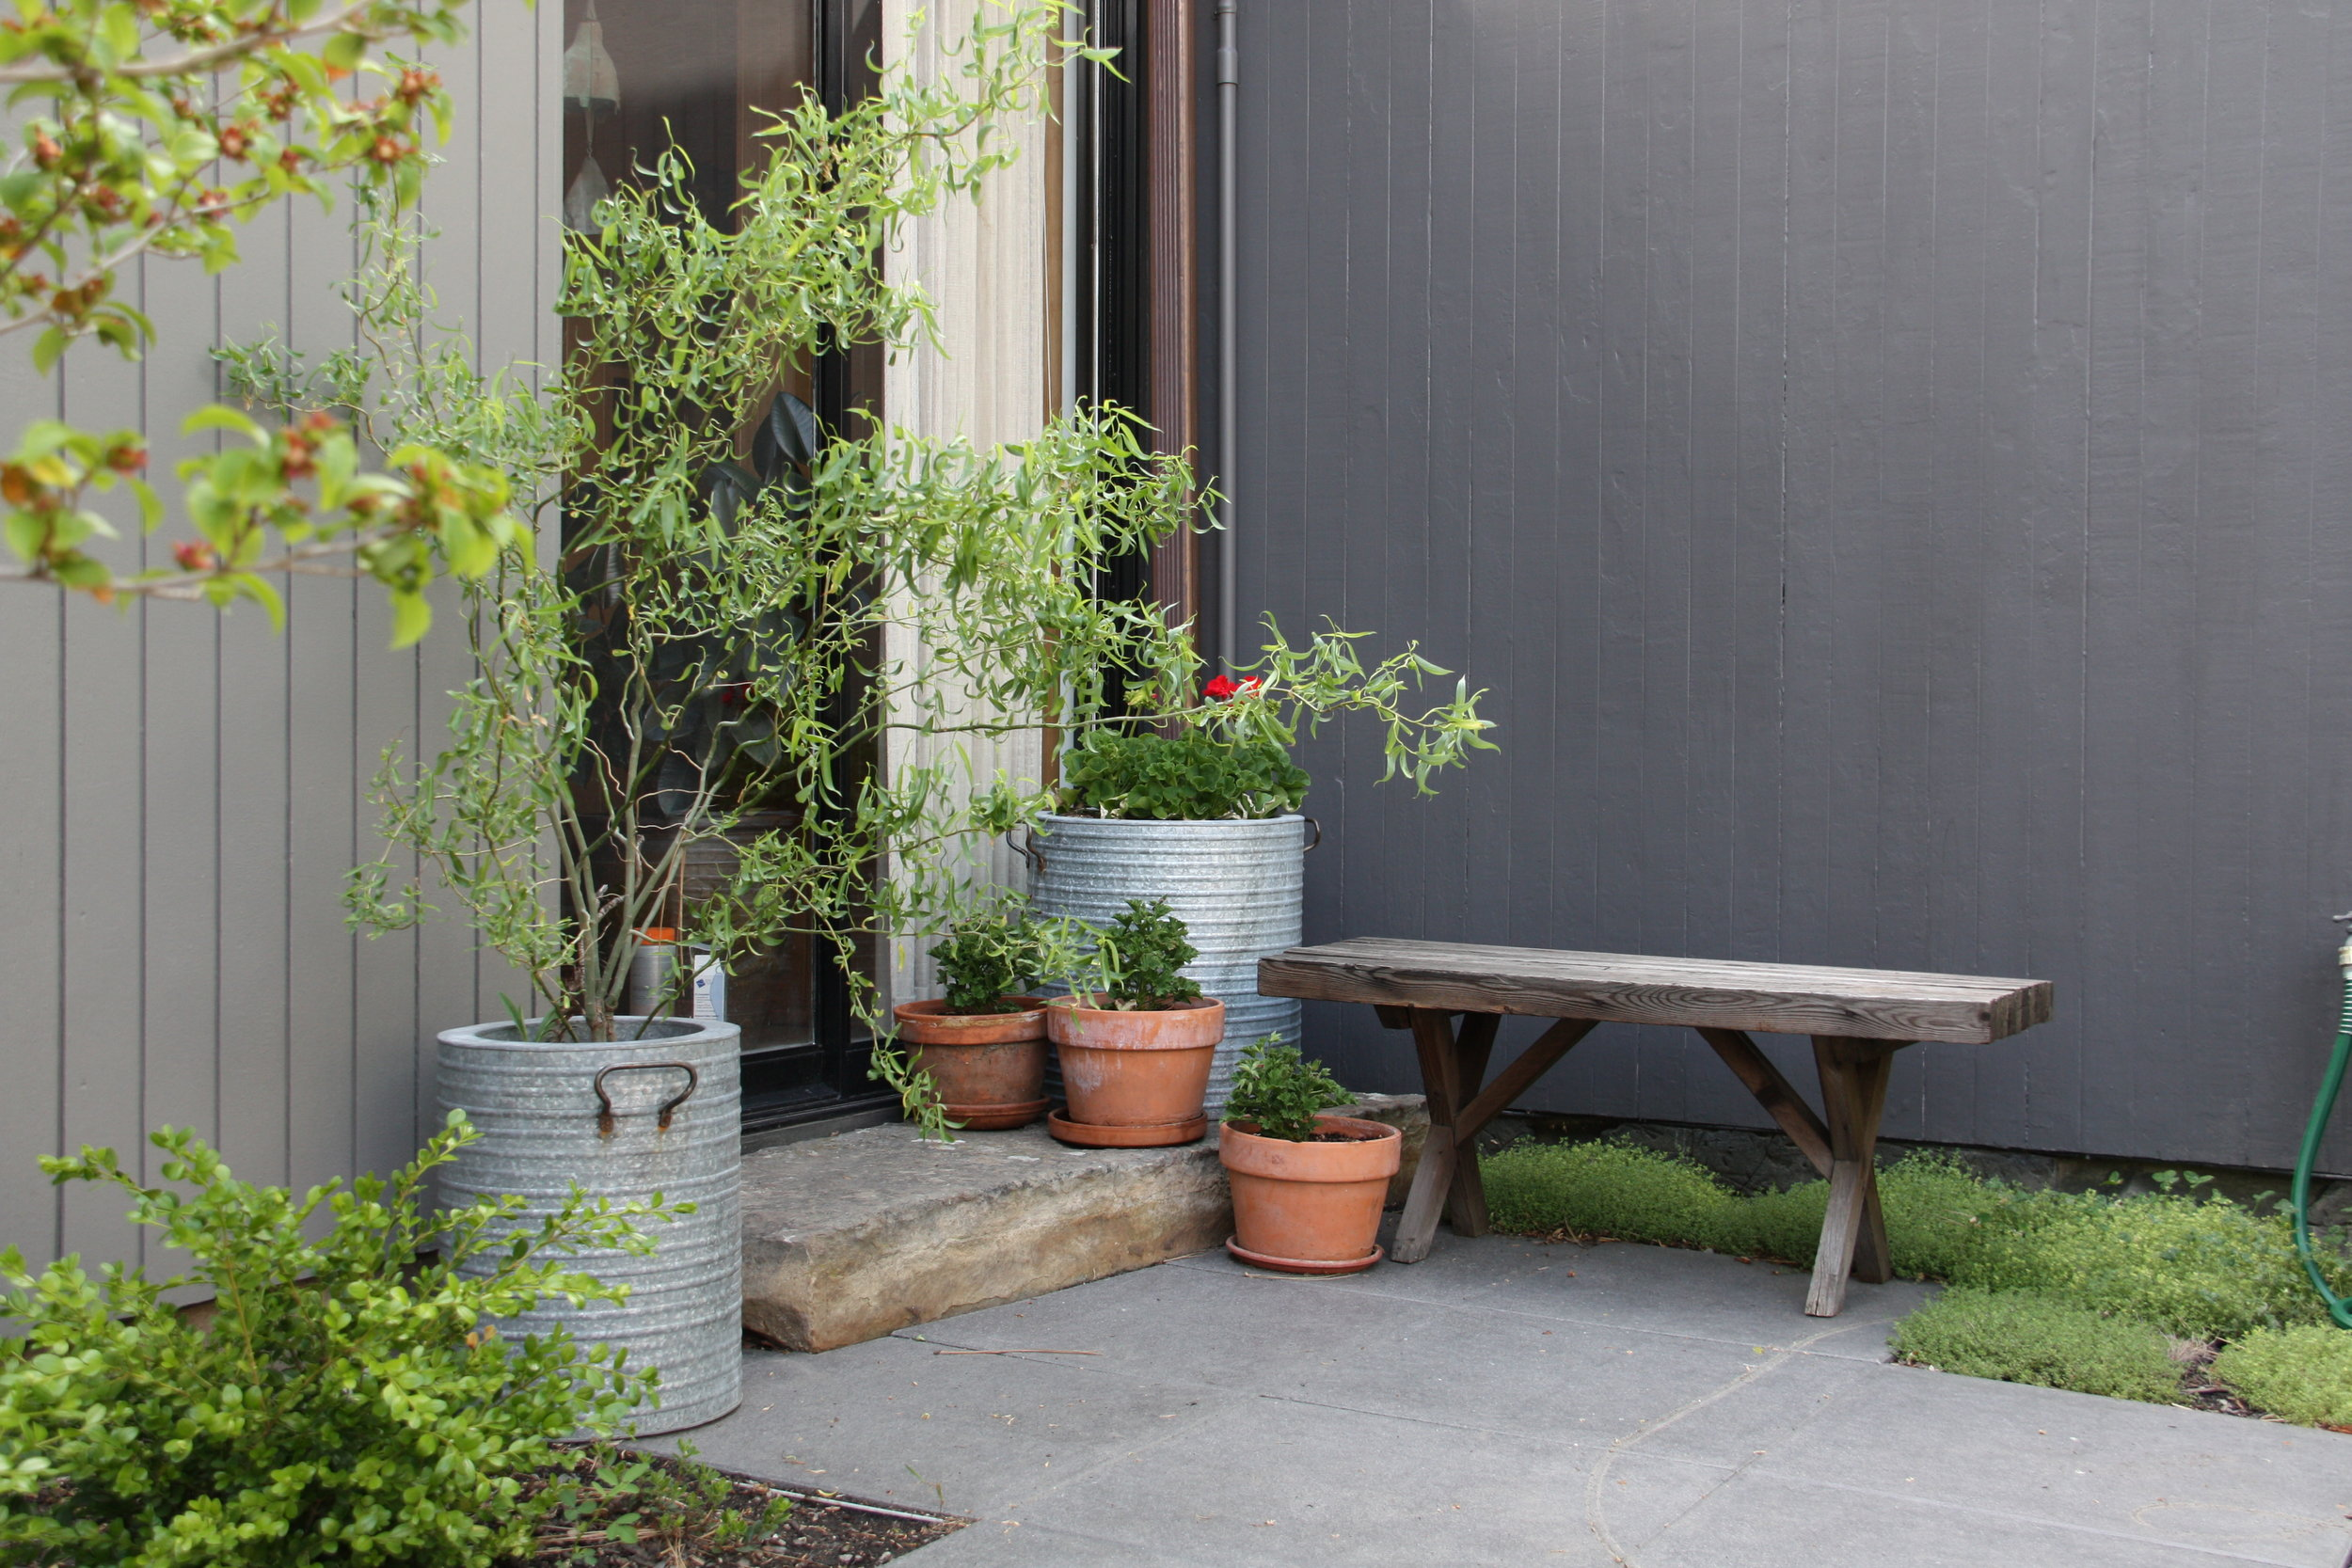 natural stone step entry with pots